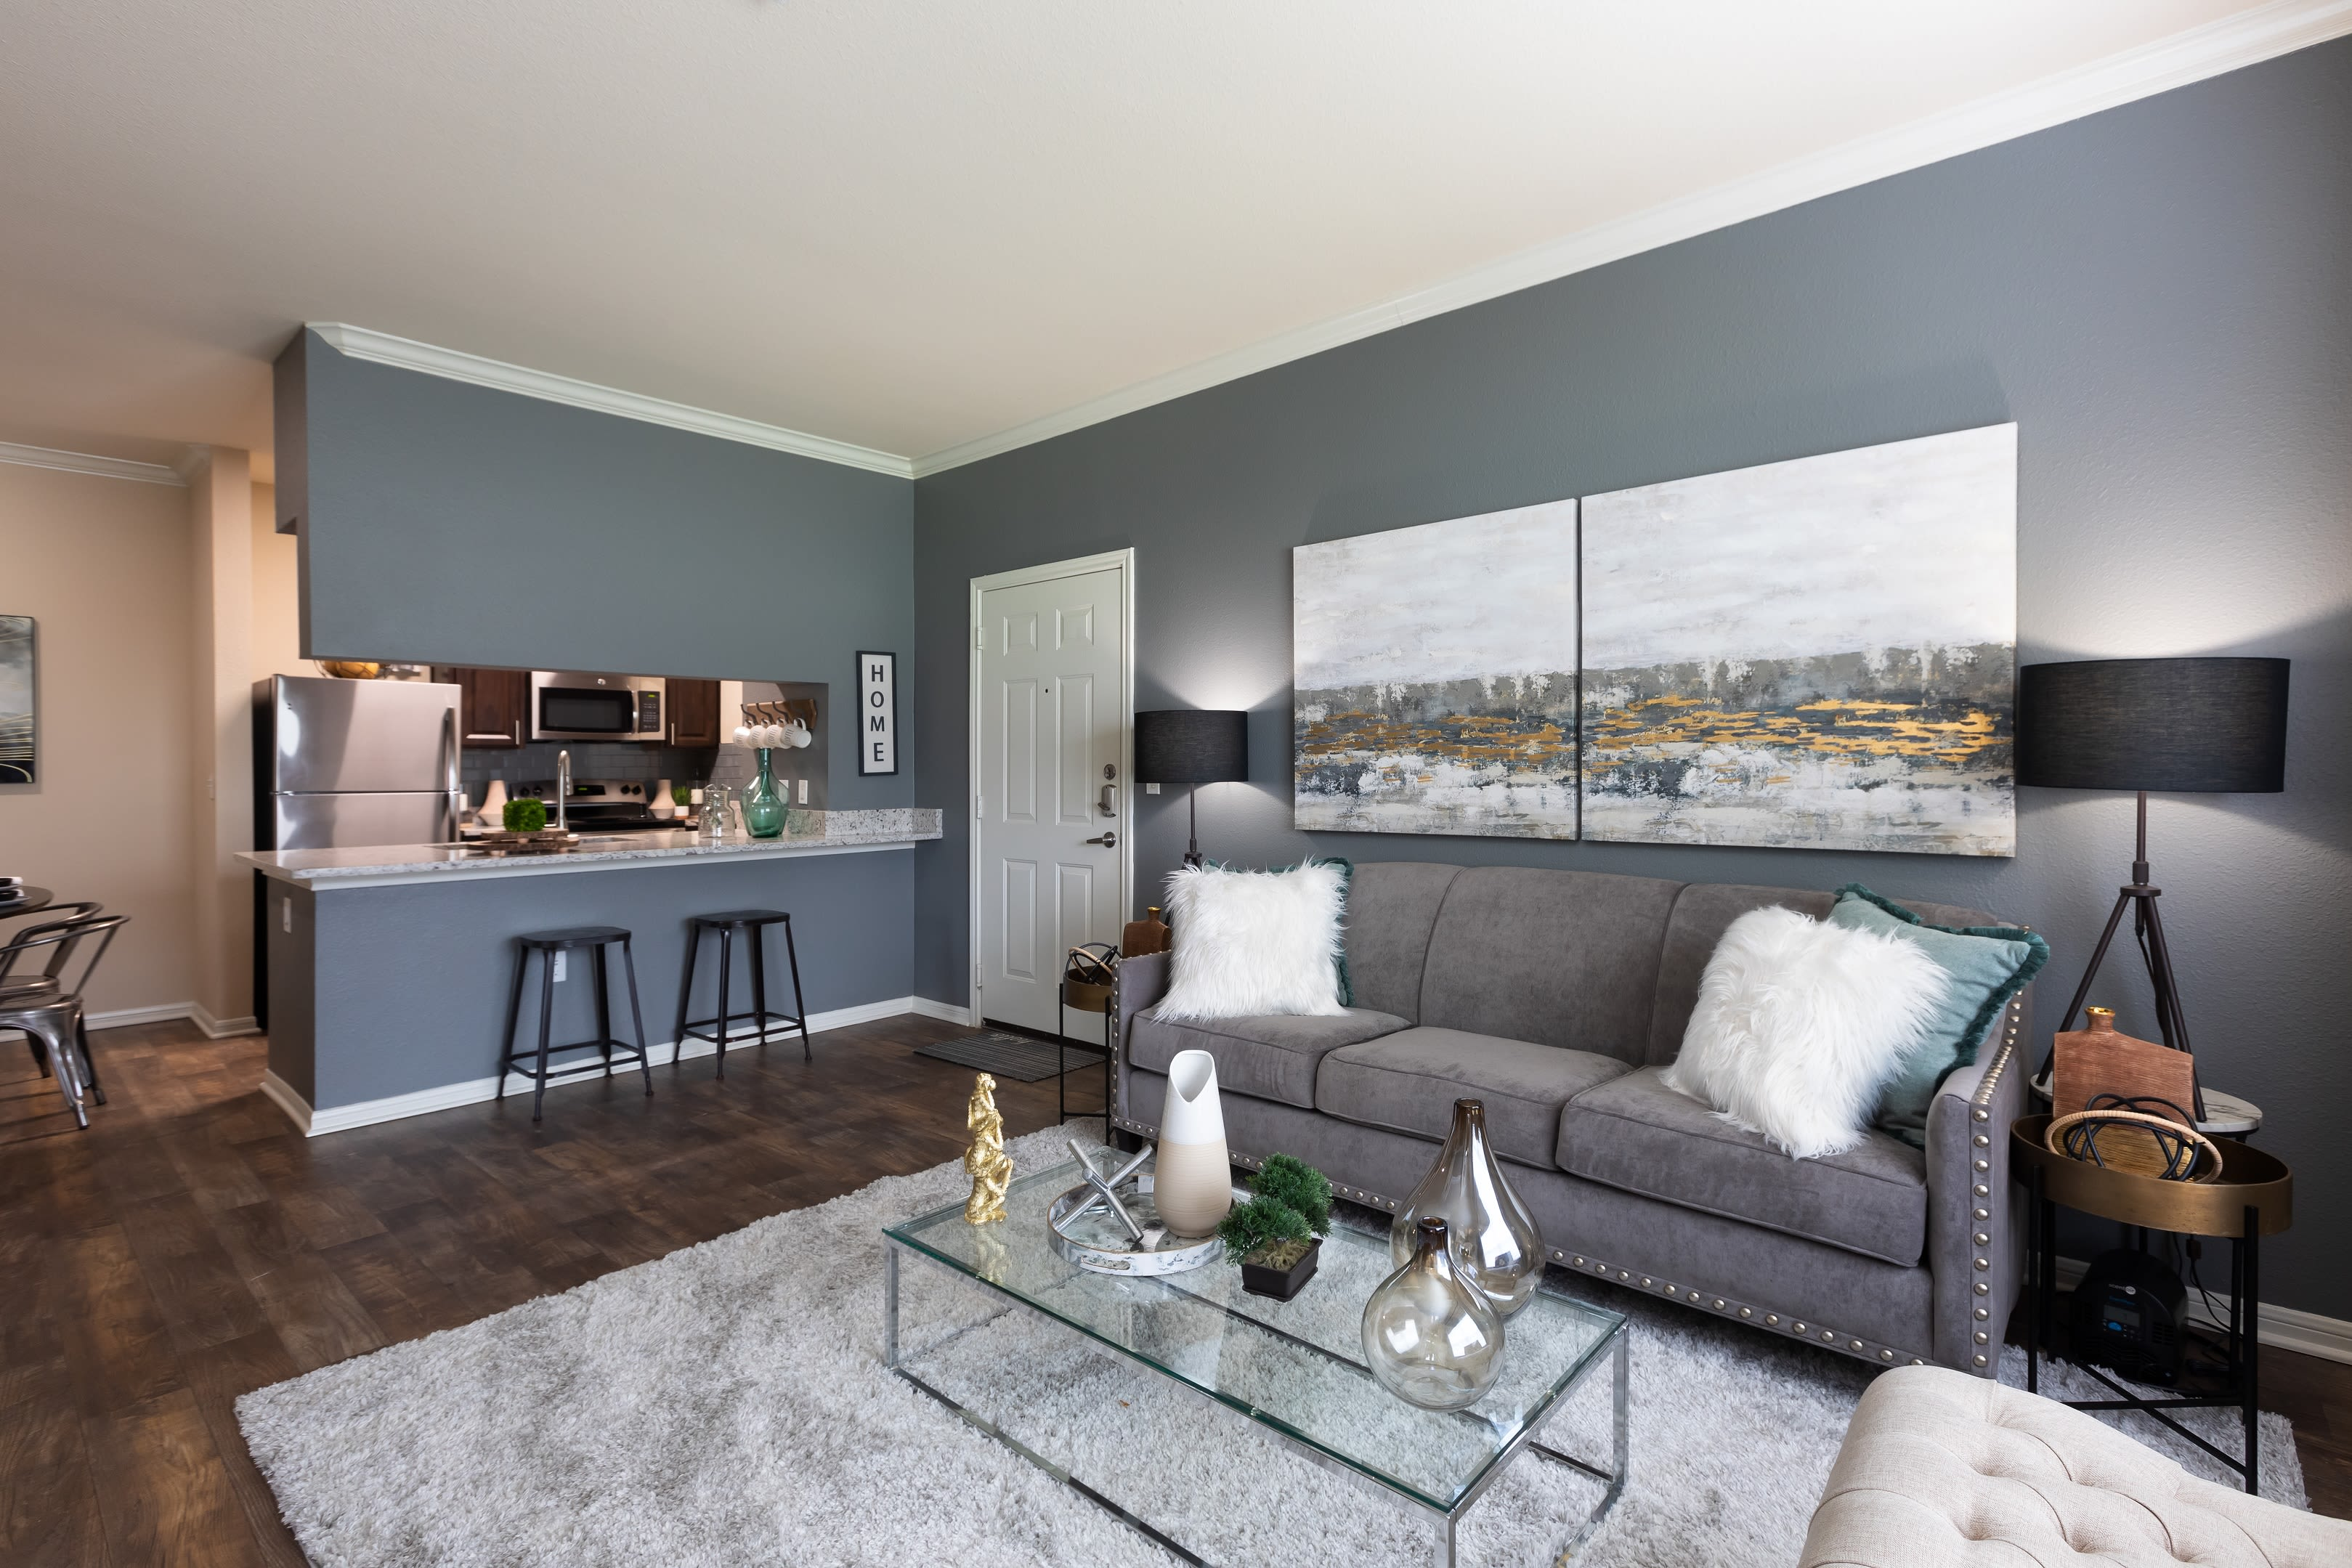 Open-concept floor plan with hardwood floors and accent wall in the living area of model home at Ranch at Hudson Xing in McKinney, Texas